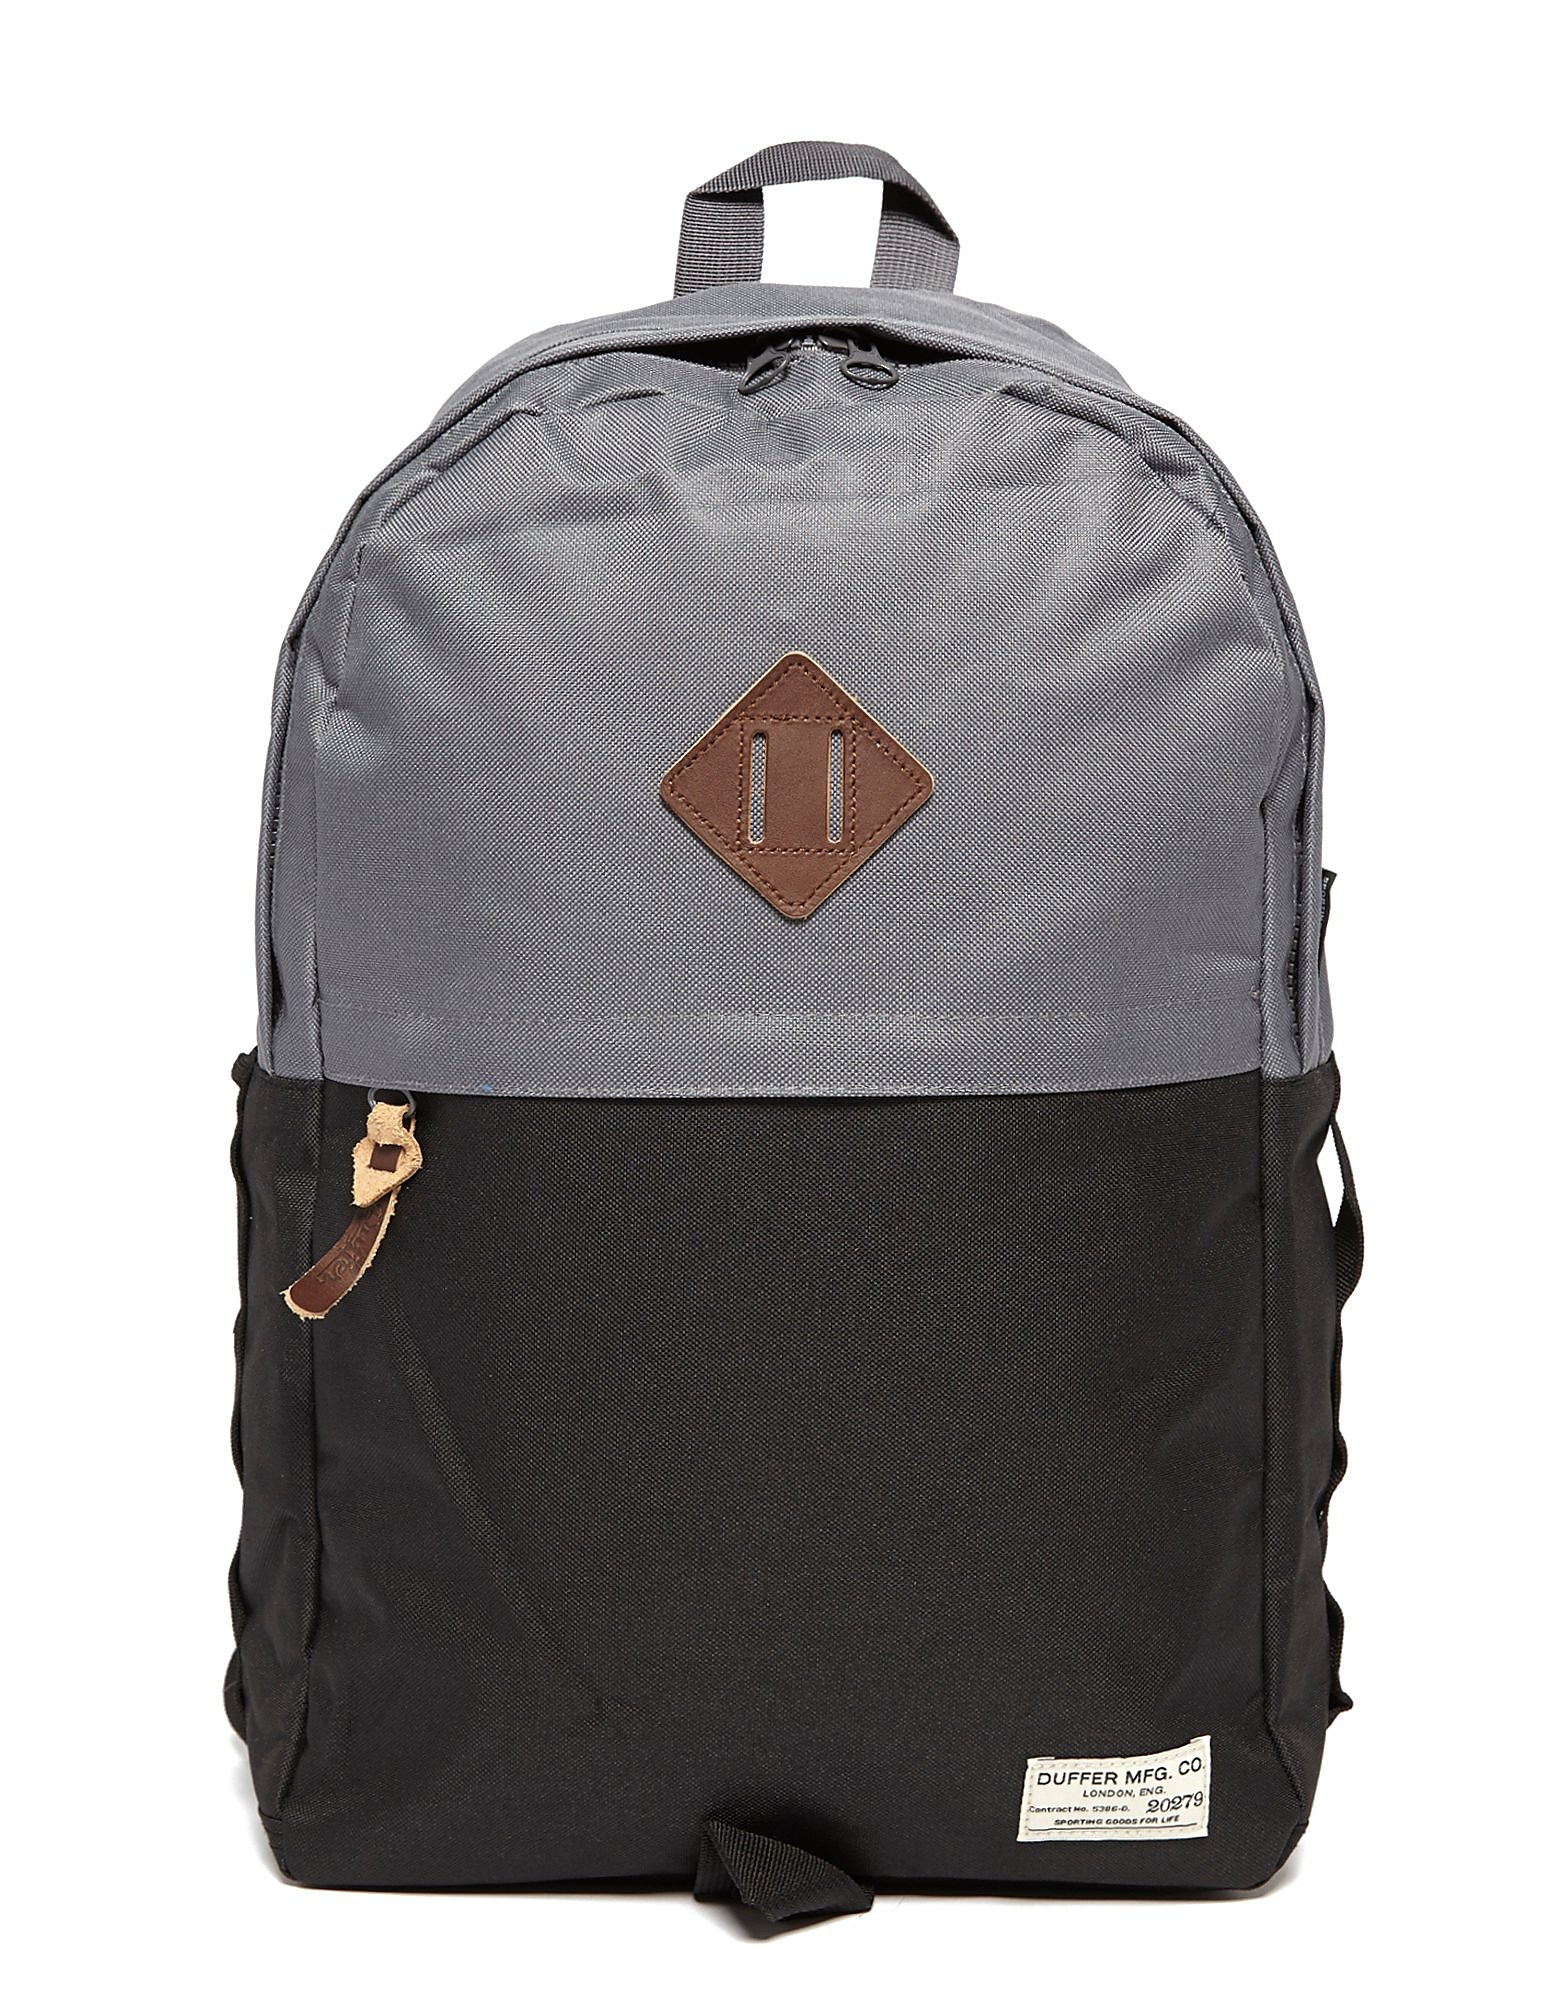 Duffer of St George Lands Backpack